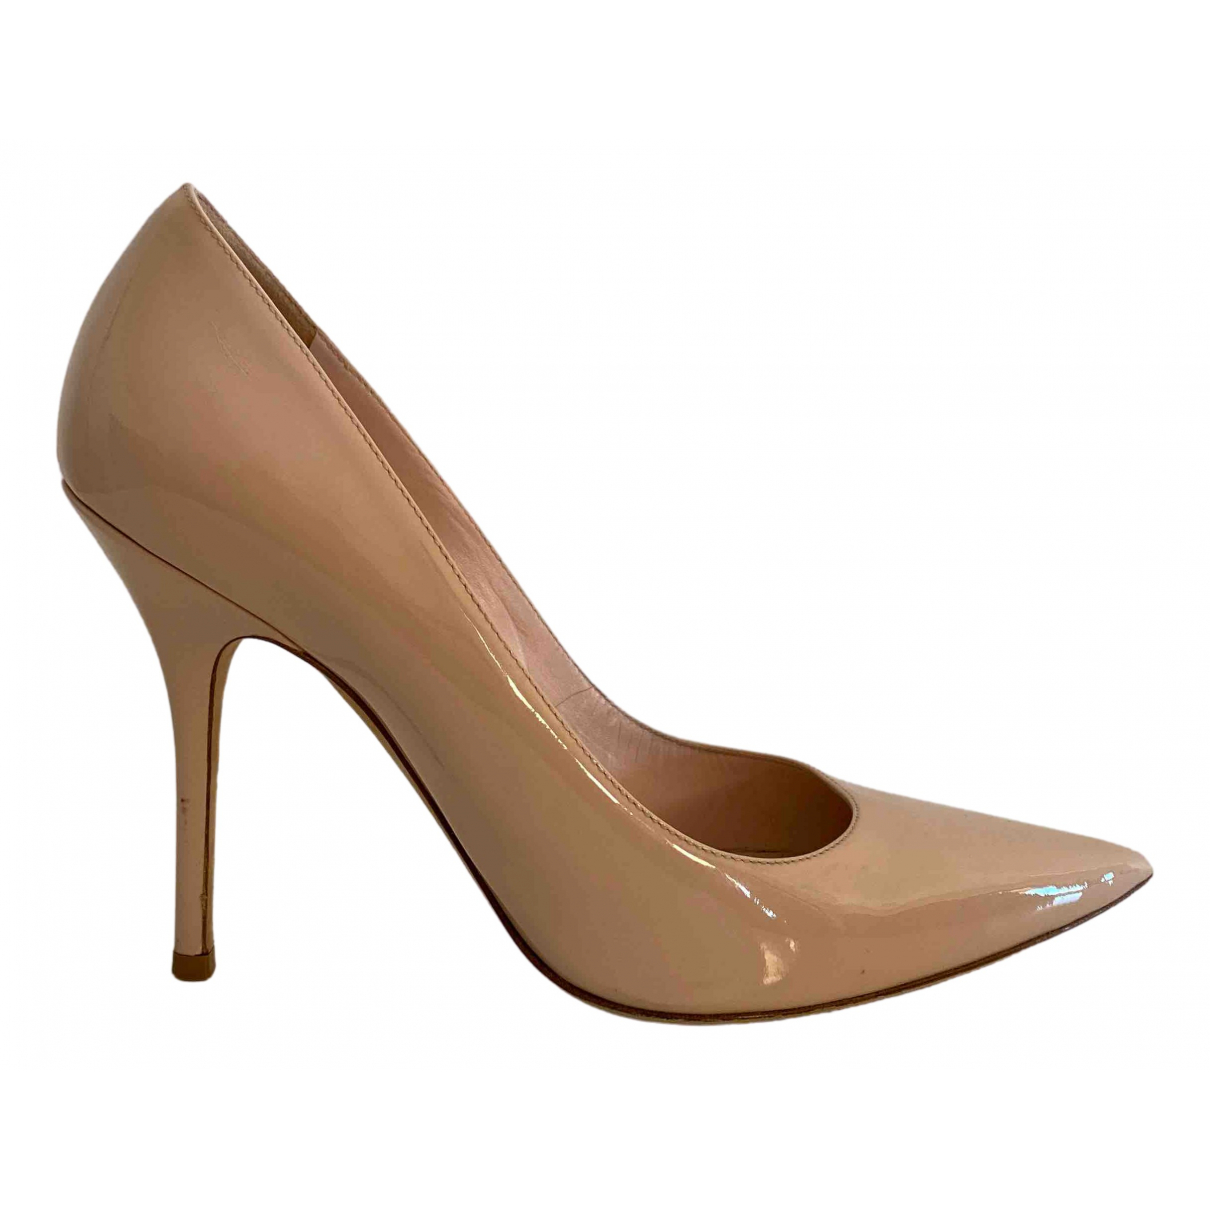 Dior \N Beige Patent leather Heels for Women 38.5 IT